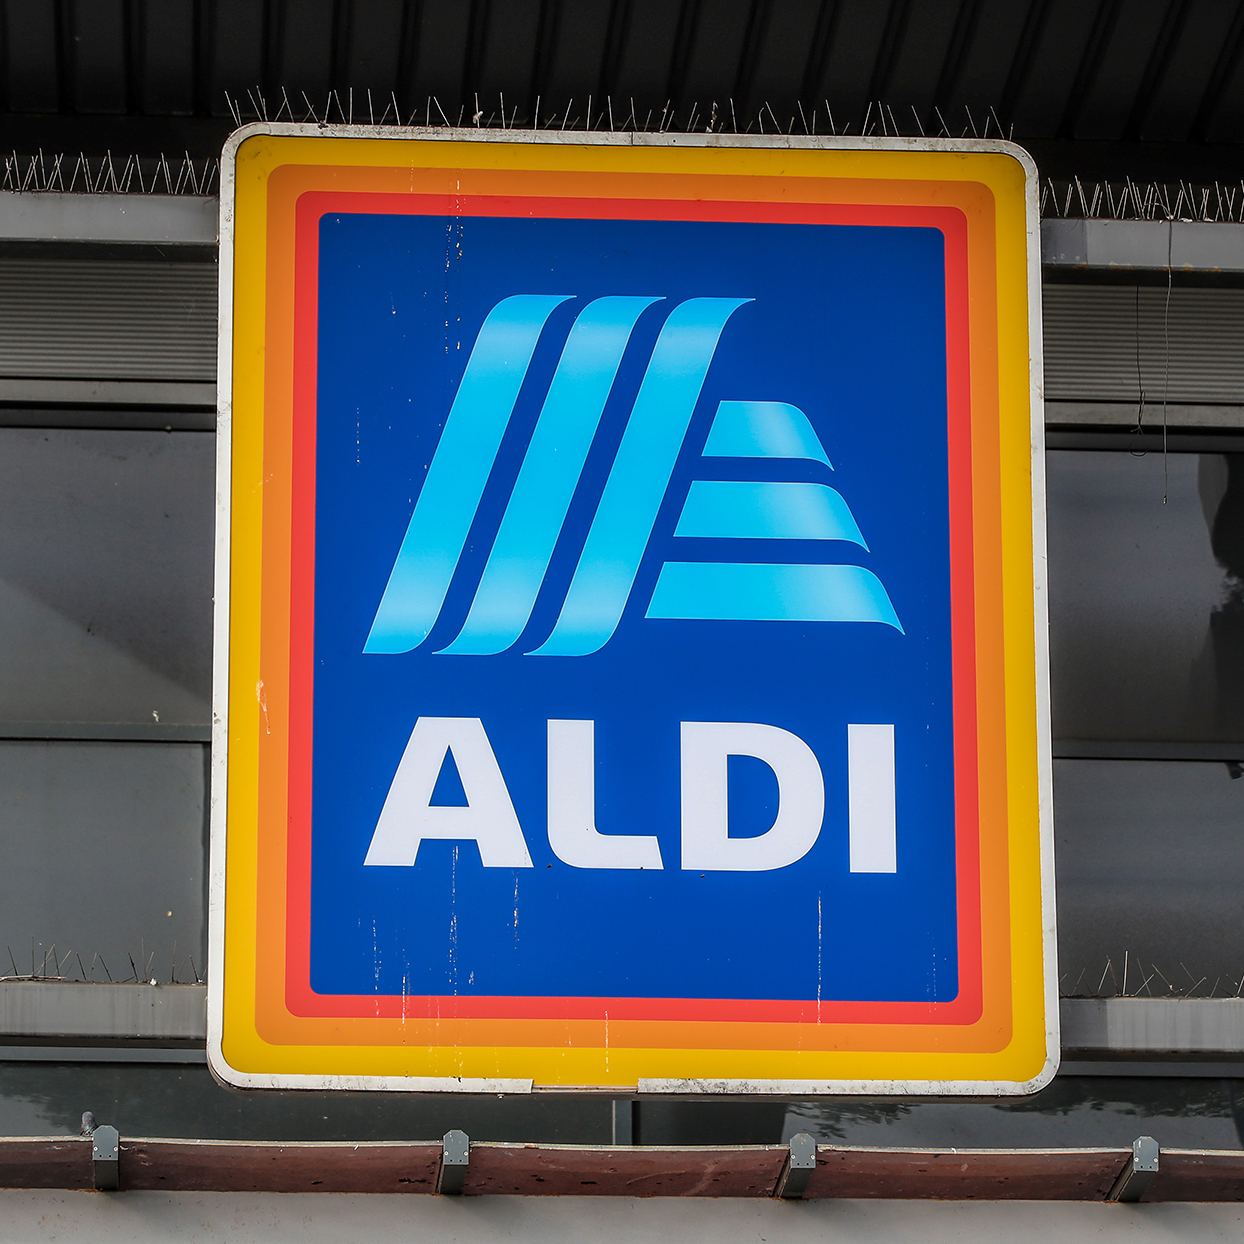 An Aldi store in Marsh Lane Bootle, Liverpool. Aldi has said it plans to more than double its store numbers in London as it moves forward with plans to open more smaller Aldi Local outlets